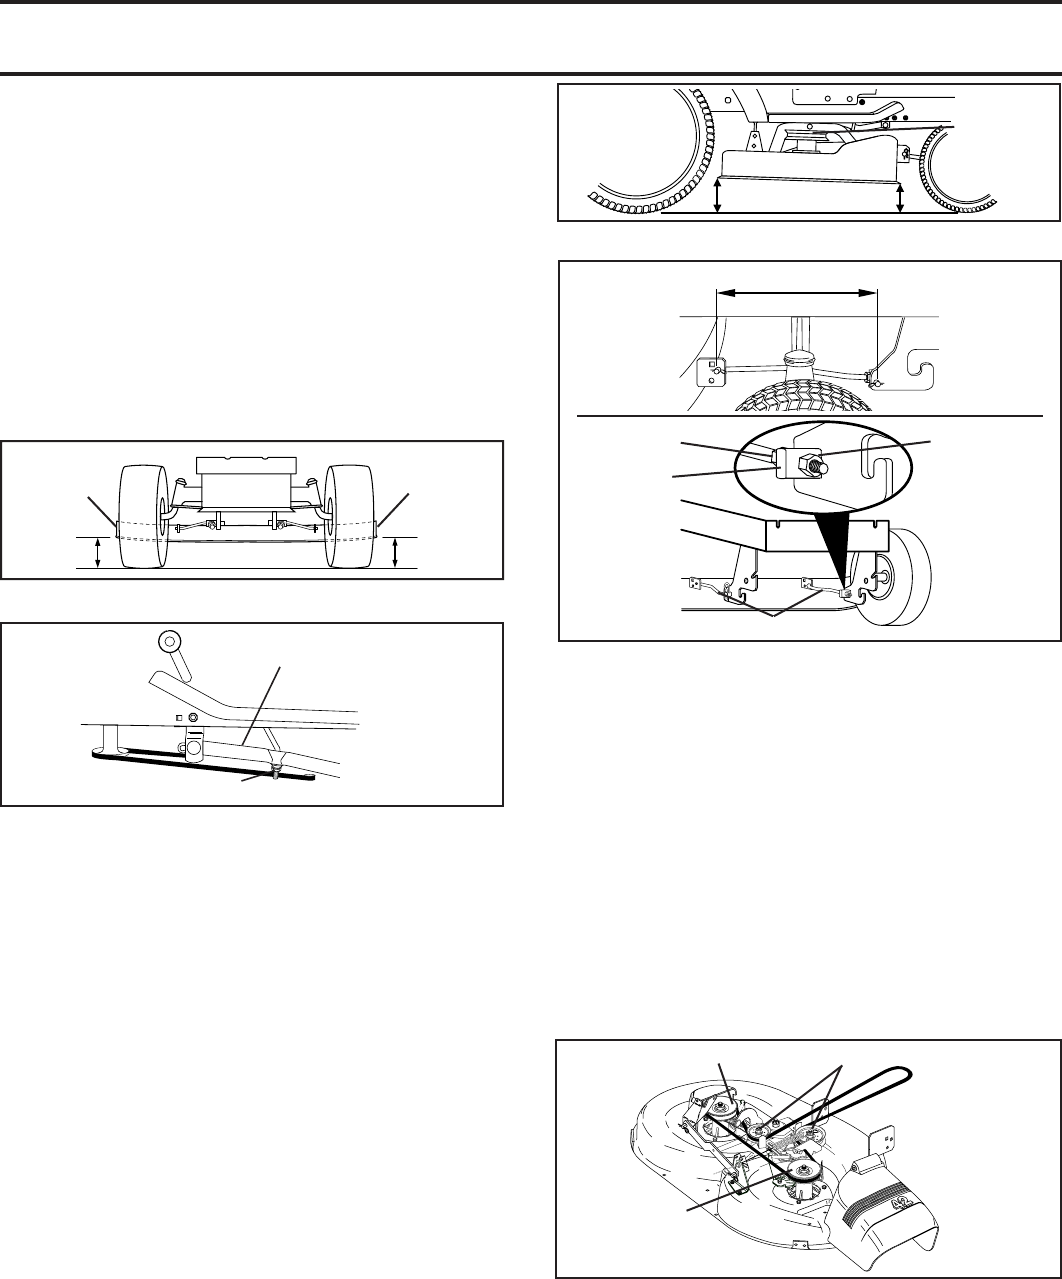 Husqvarna Mower Drive Belt Adjustment Image Of Wiring Diagram Rz 5426 Lth1742 To Replace Blade See Fig 21